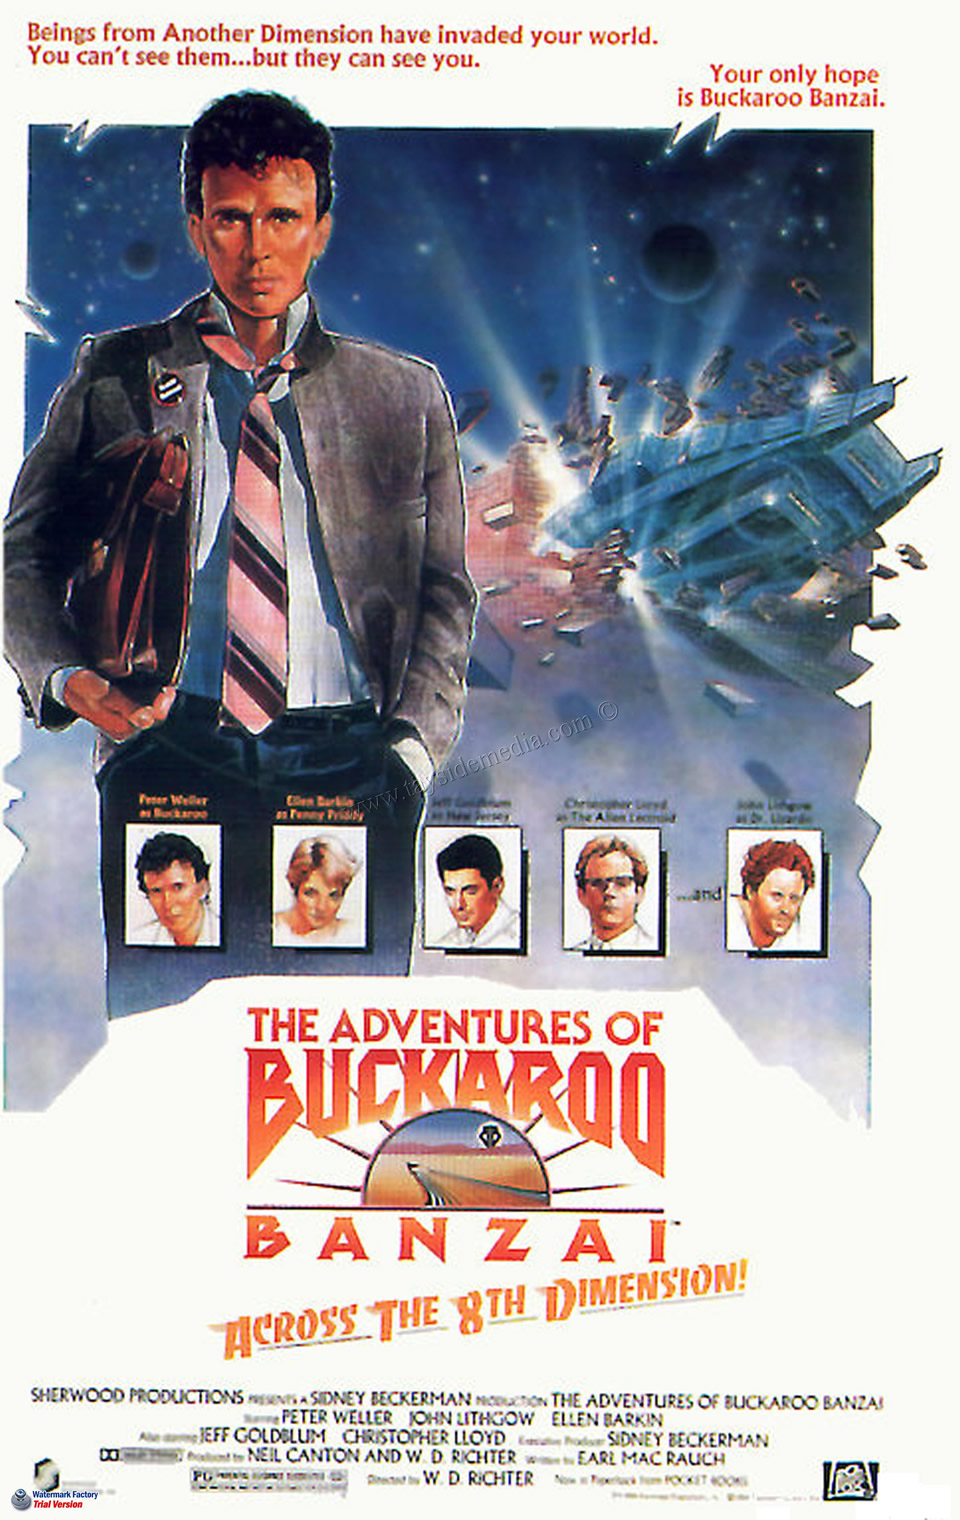 The Adventures of Buckaroo Banzai... (1984)